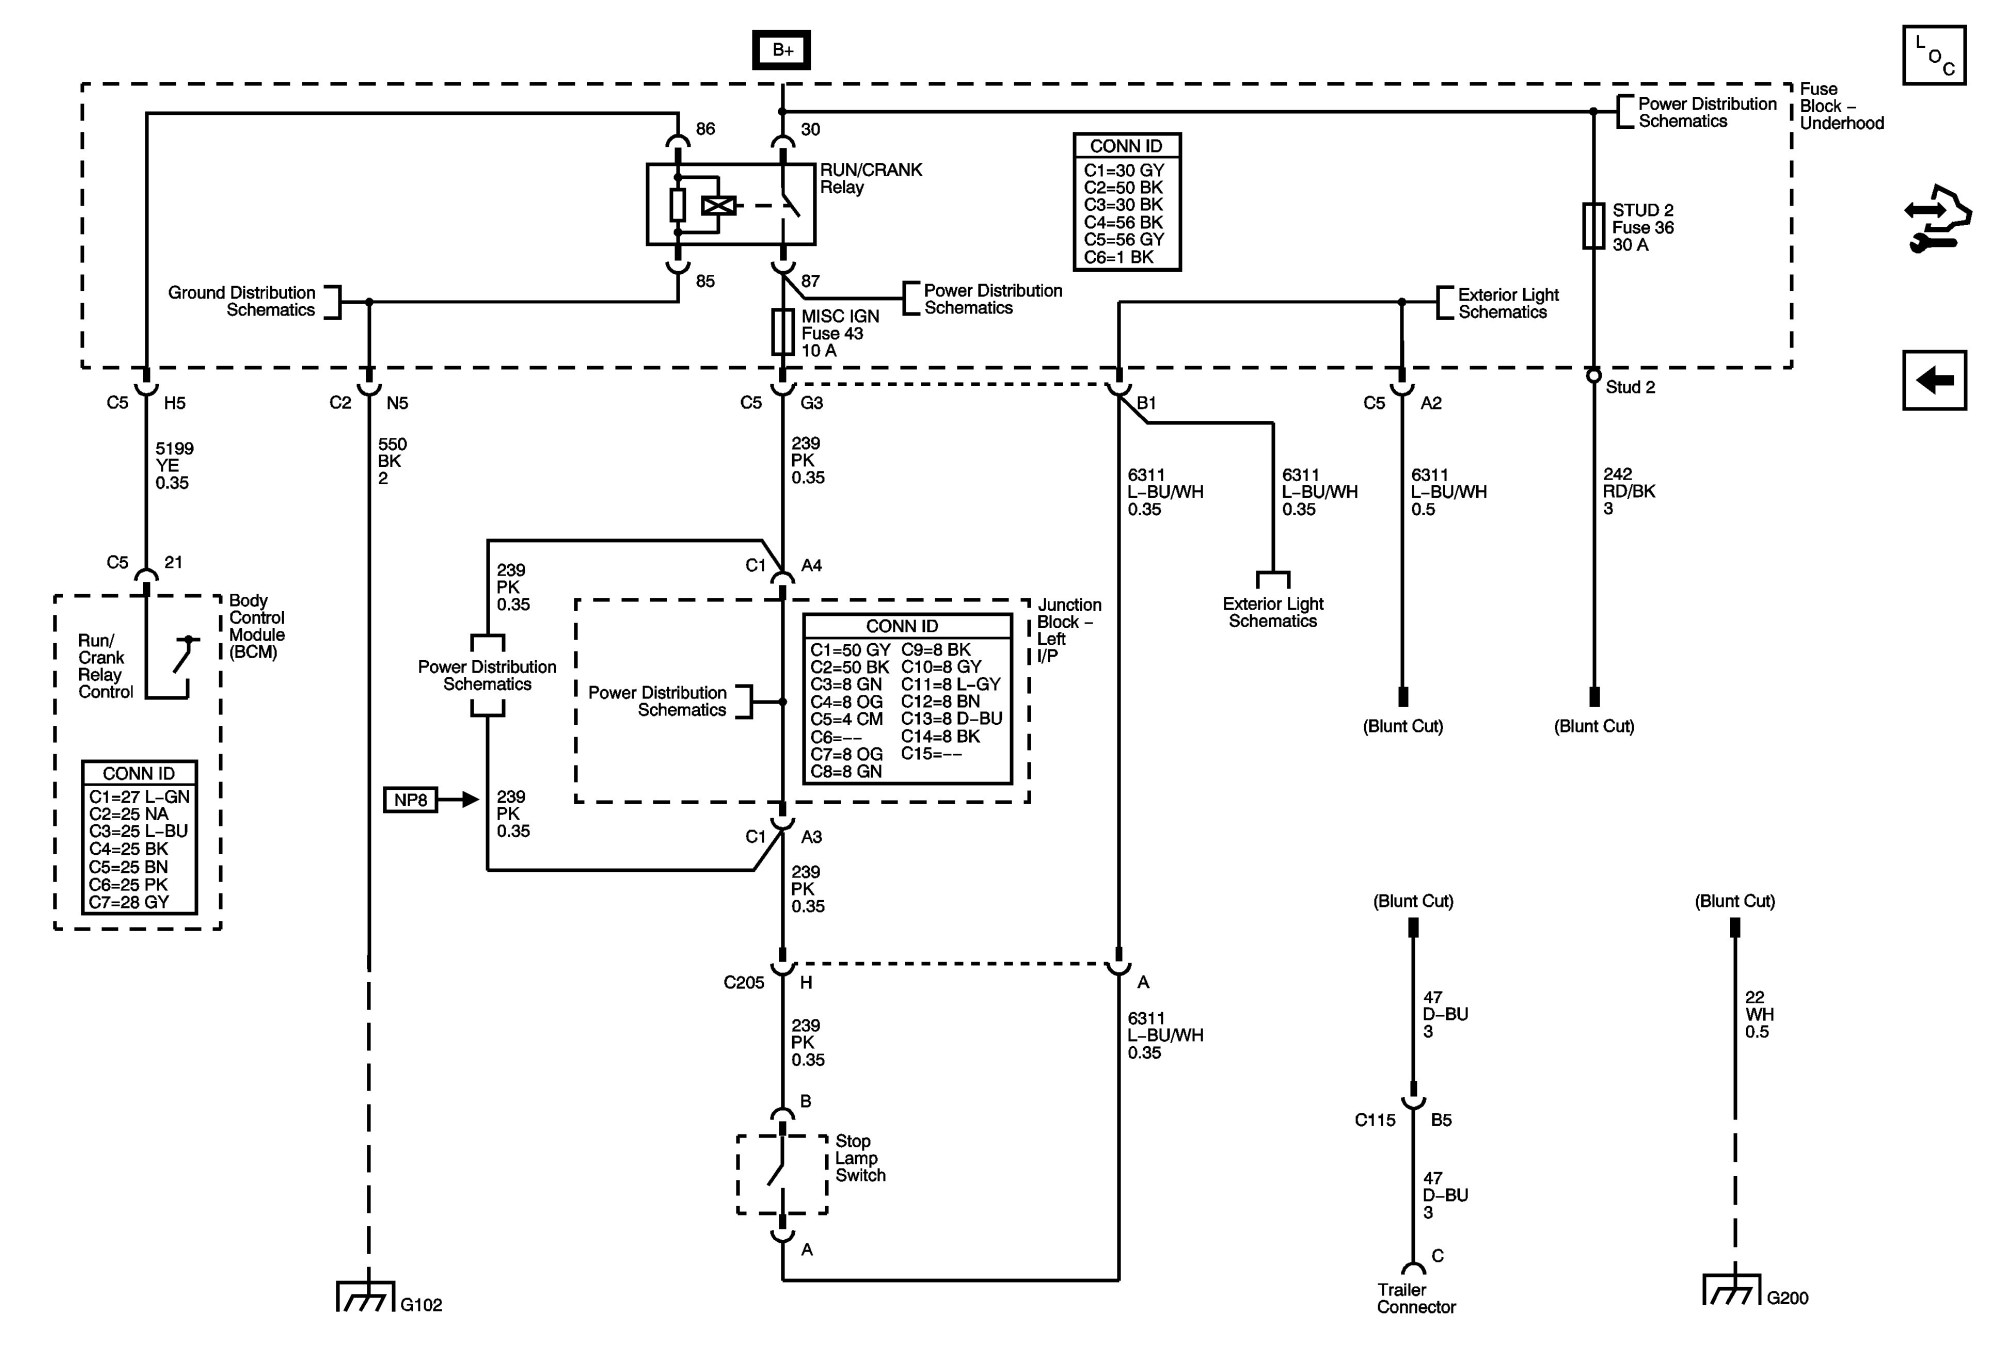 hight resolution of c11 pc wiring diagram wiring library pc power diagram c11 pc wiring diagram